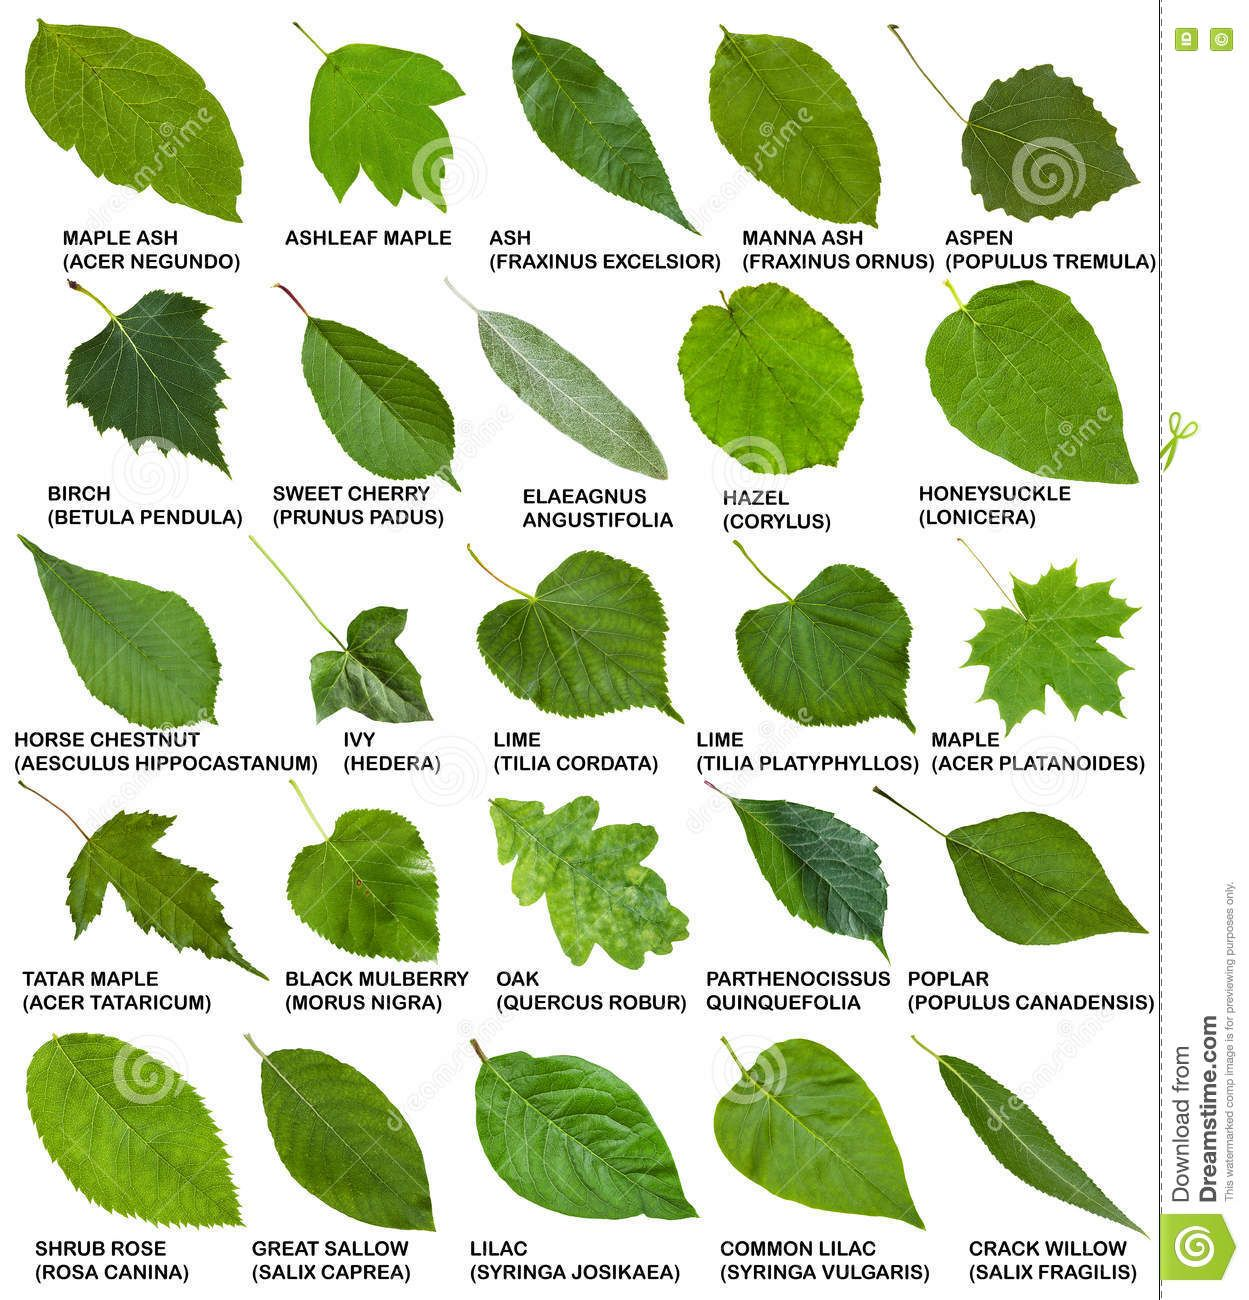 Green Leaves Of Trees And Shrubs With Names Stock Image Image Of Name Description 77218635 Tree Leaf Identification Leaf Identification Tree Id